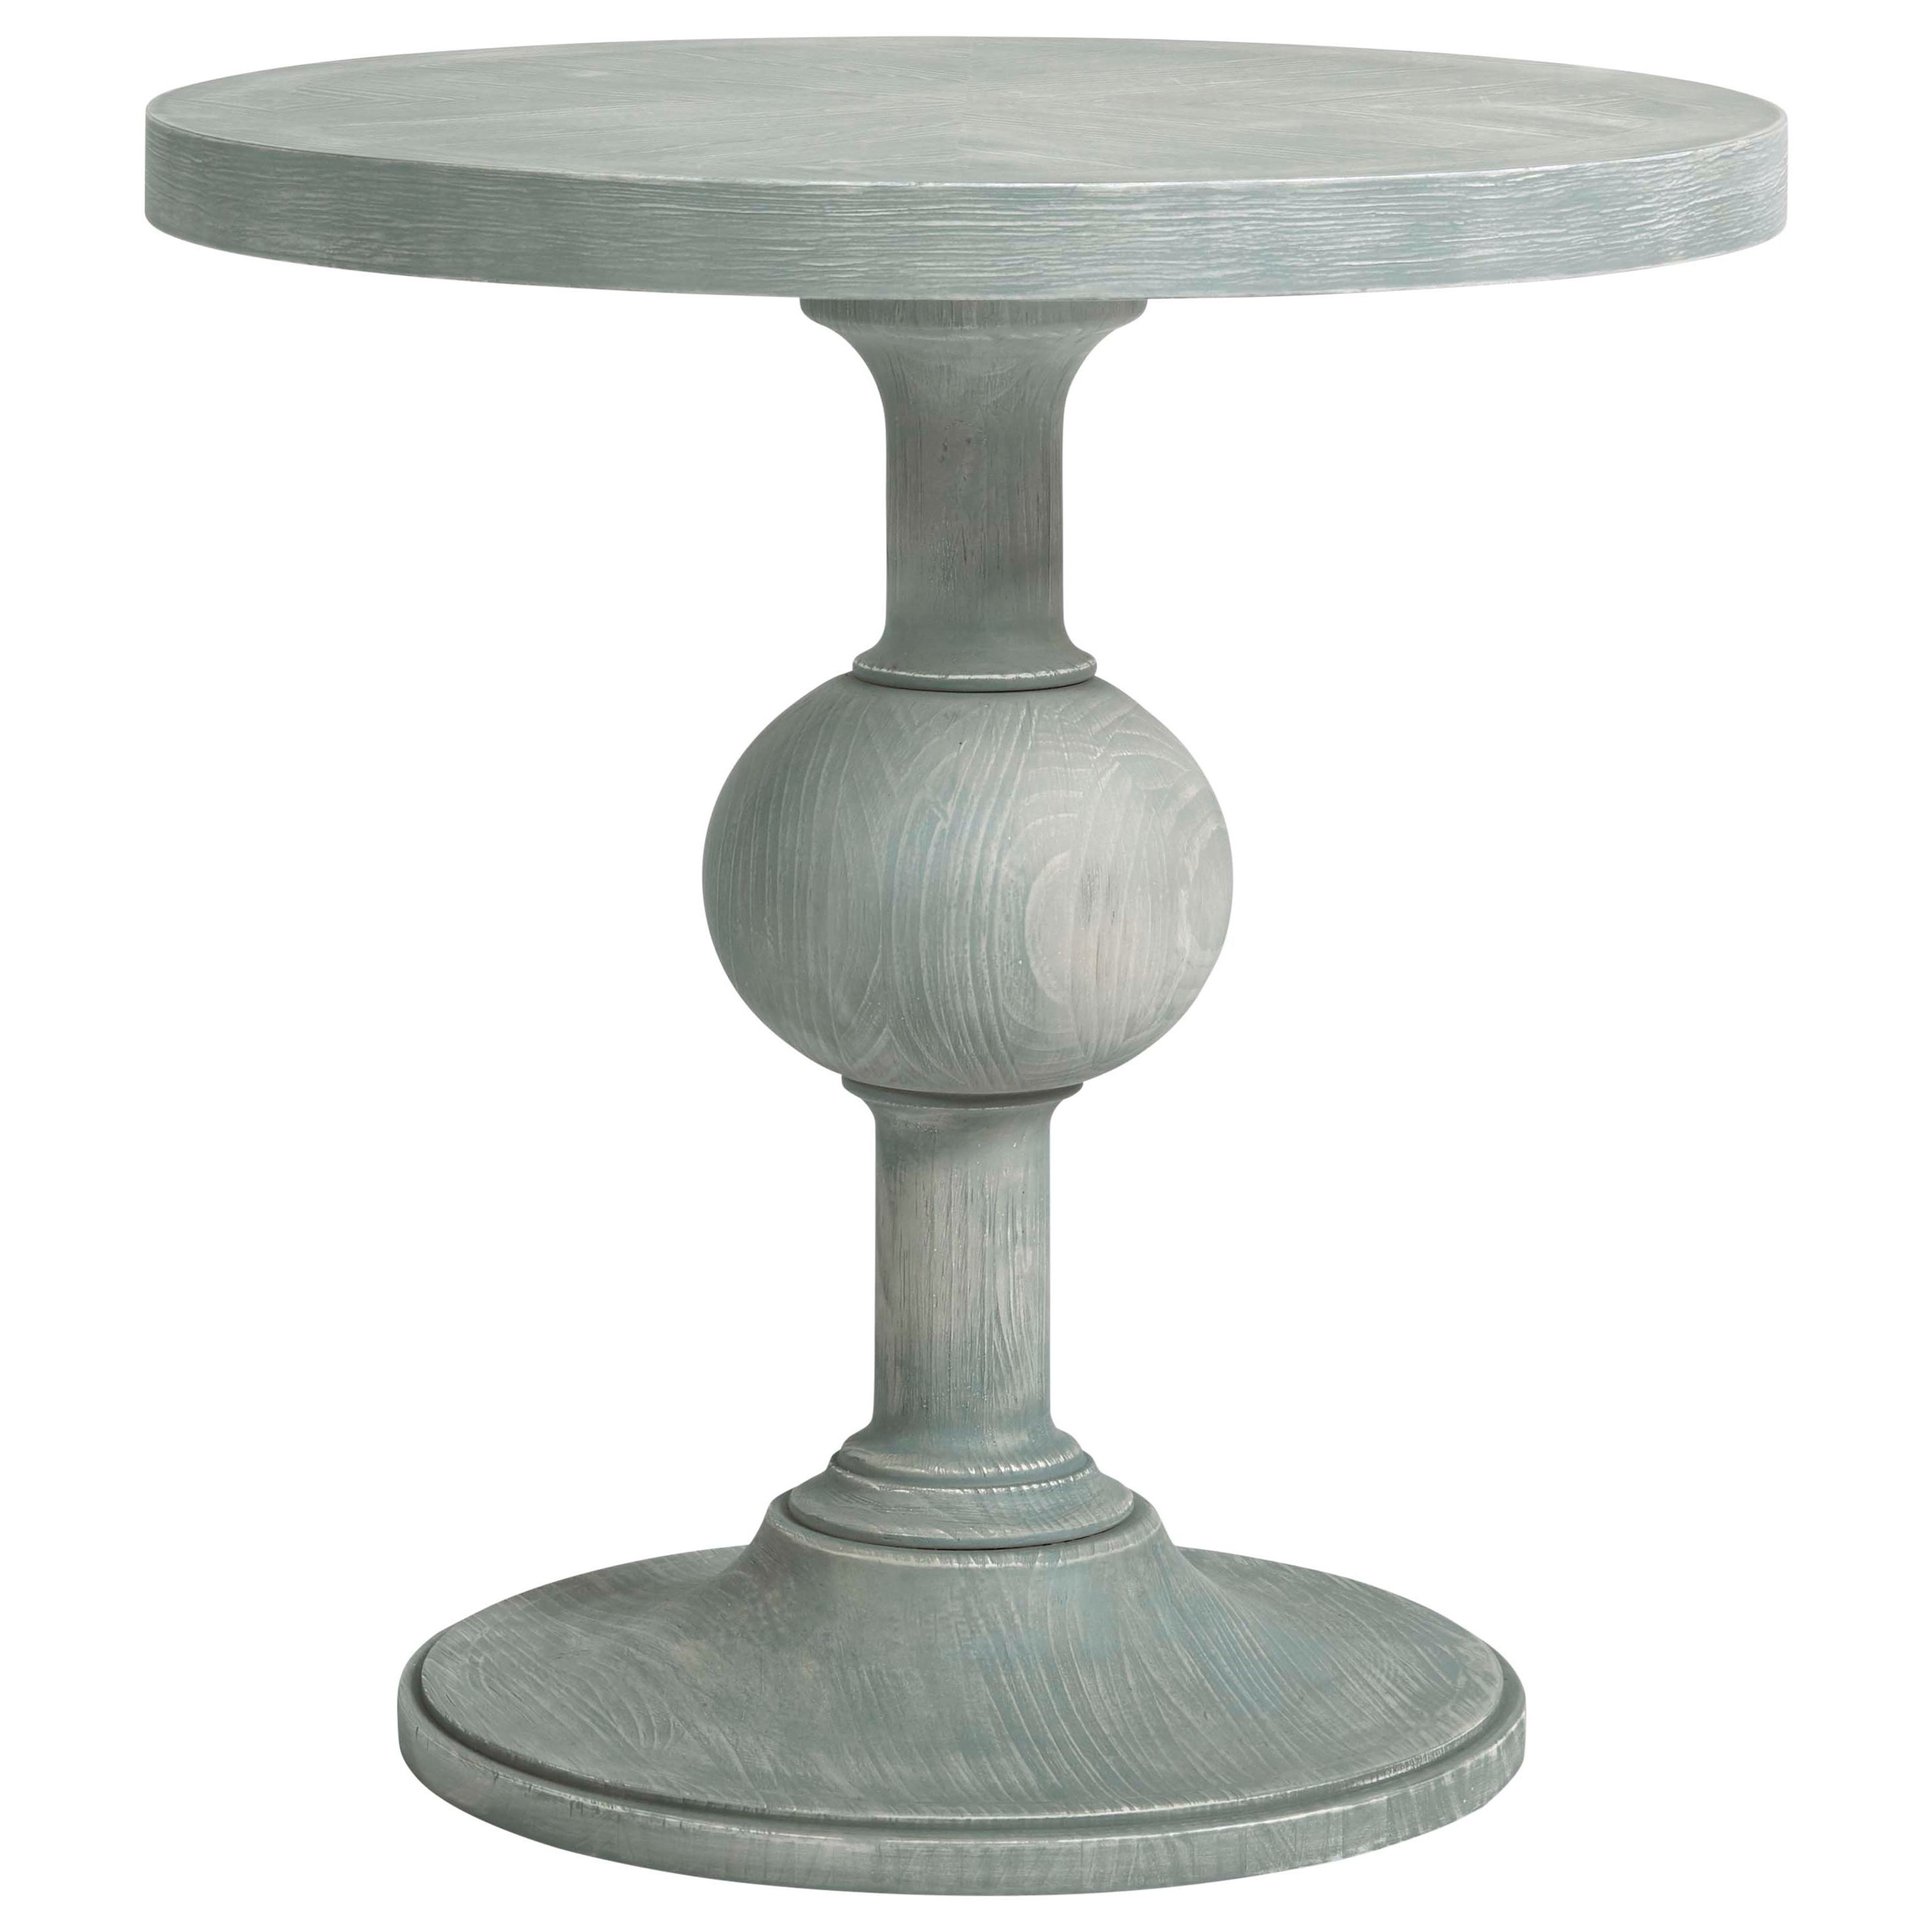 Coastal Living Home - Escape Round Pedestal End Table by Universal at Baer's Furniture